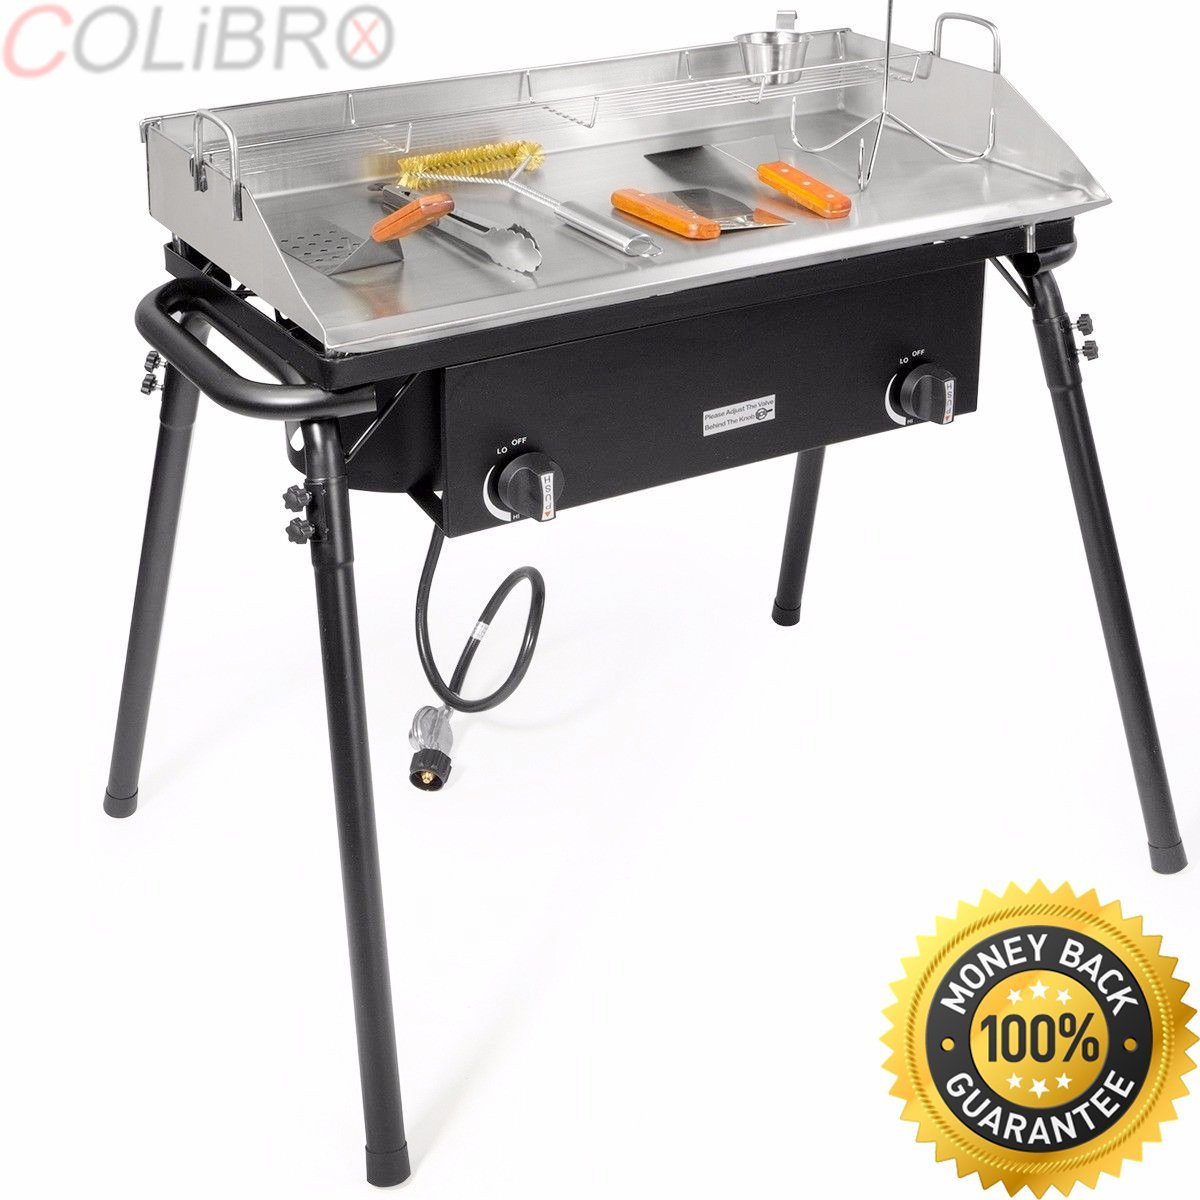 COLIBROX--9pc lpg gas Propane double Stove Burner w flat griddle Stainless comal Plancha. portable propane gas stove burner. portable propane gas stove 2 double burner range with stand.kitchen stoves.